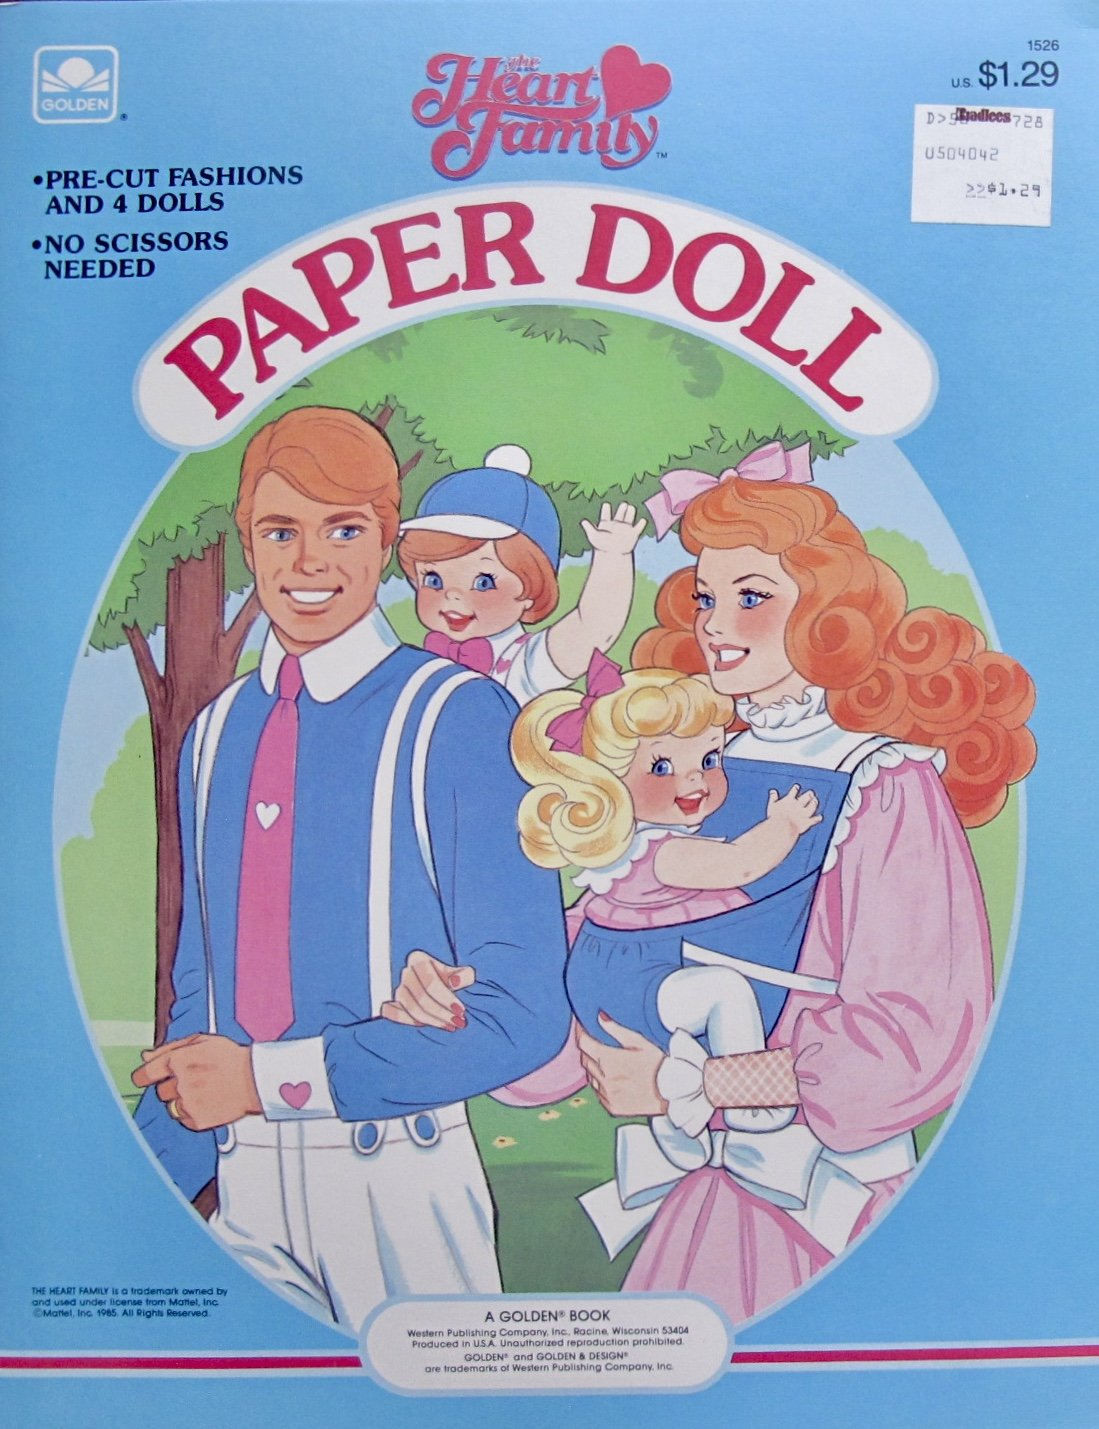 Golden The HEART FAMILY PAPER DOLL BOOK (UNCUT) w 4 Card Stock DOLLS & Pre-Cut FASHIONS (1985 Mattel)